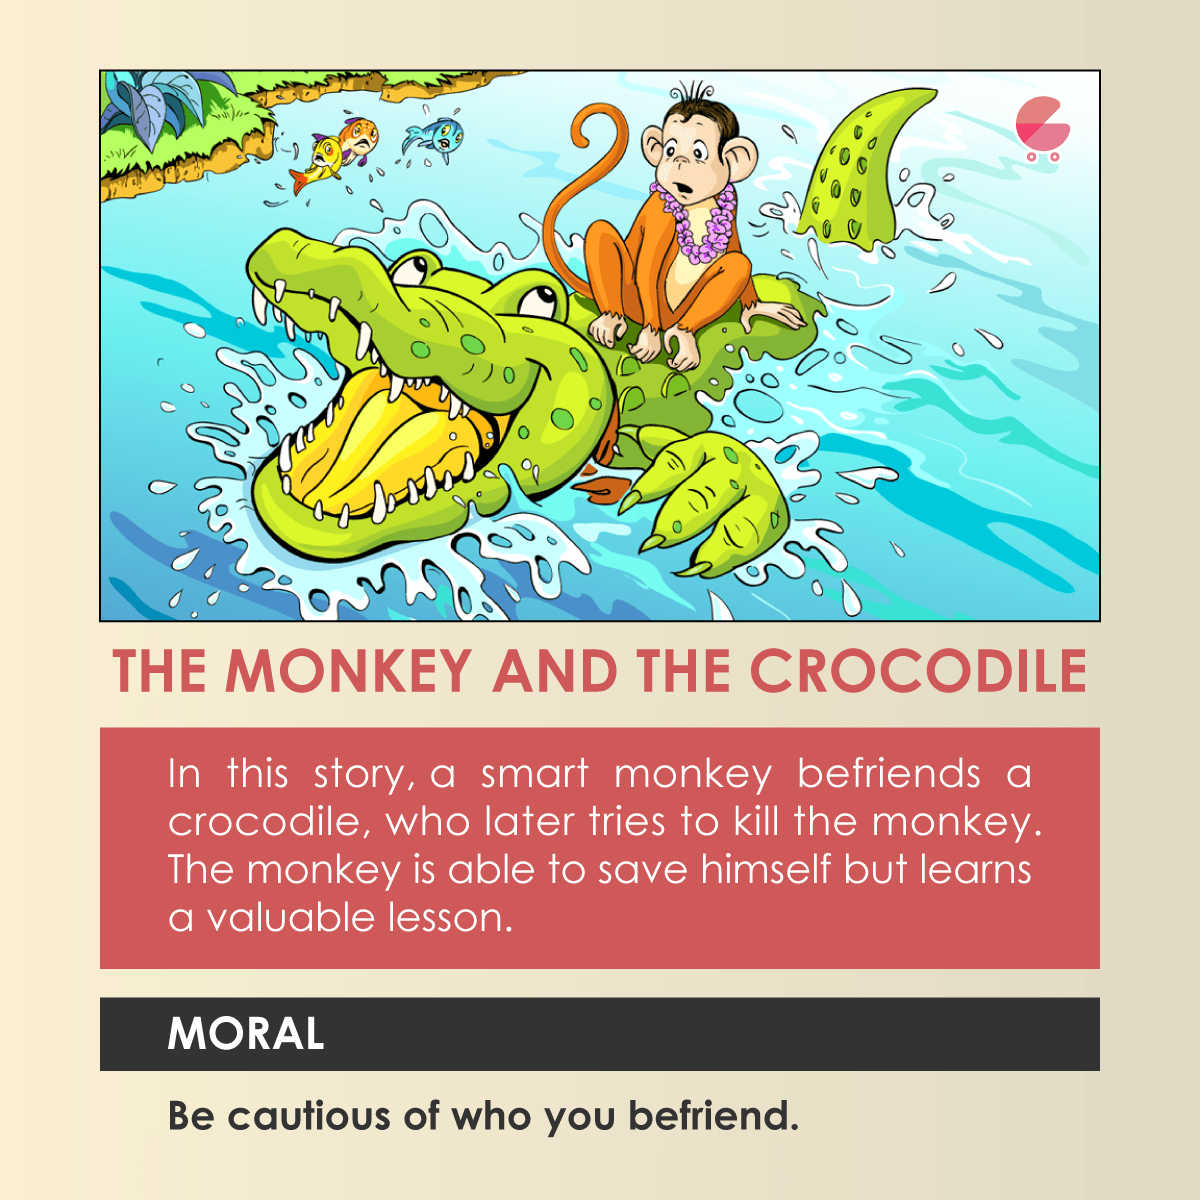 Story of the monkey and the crocodile